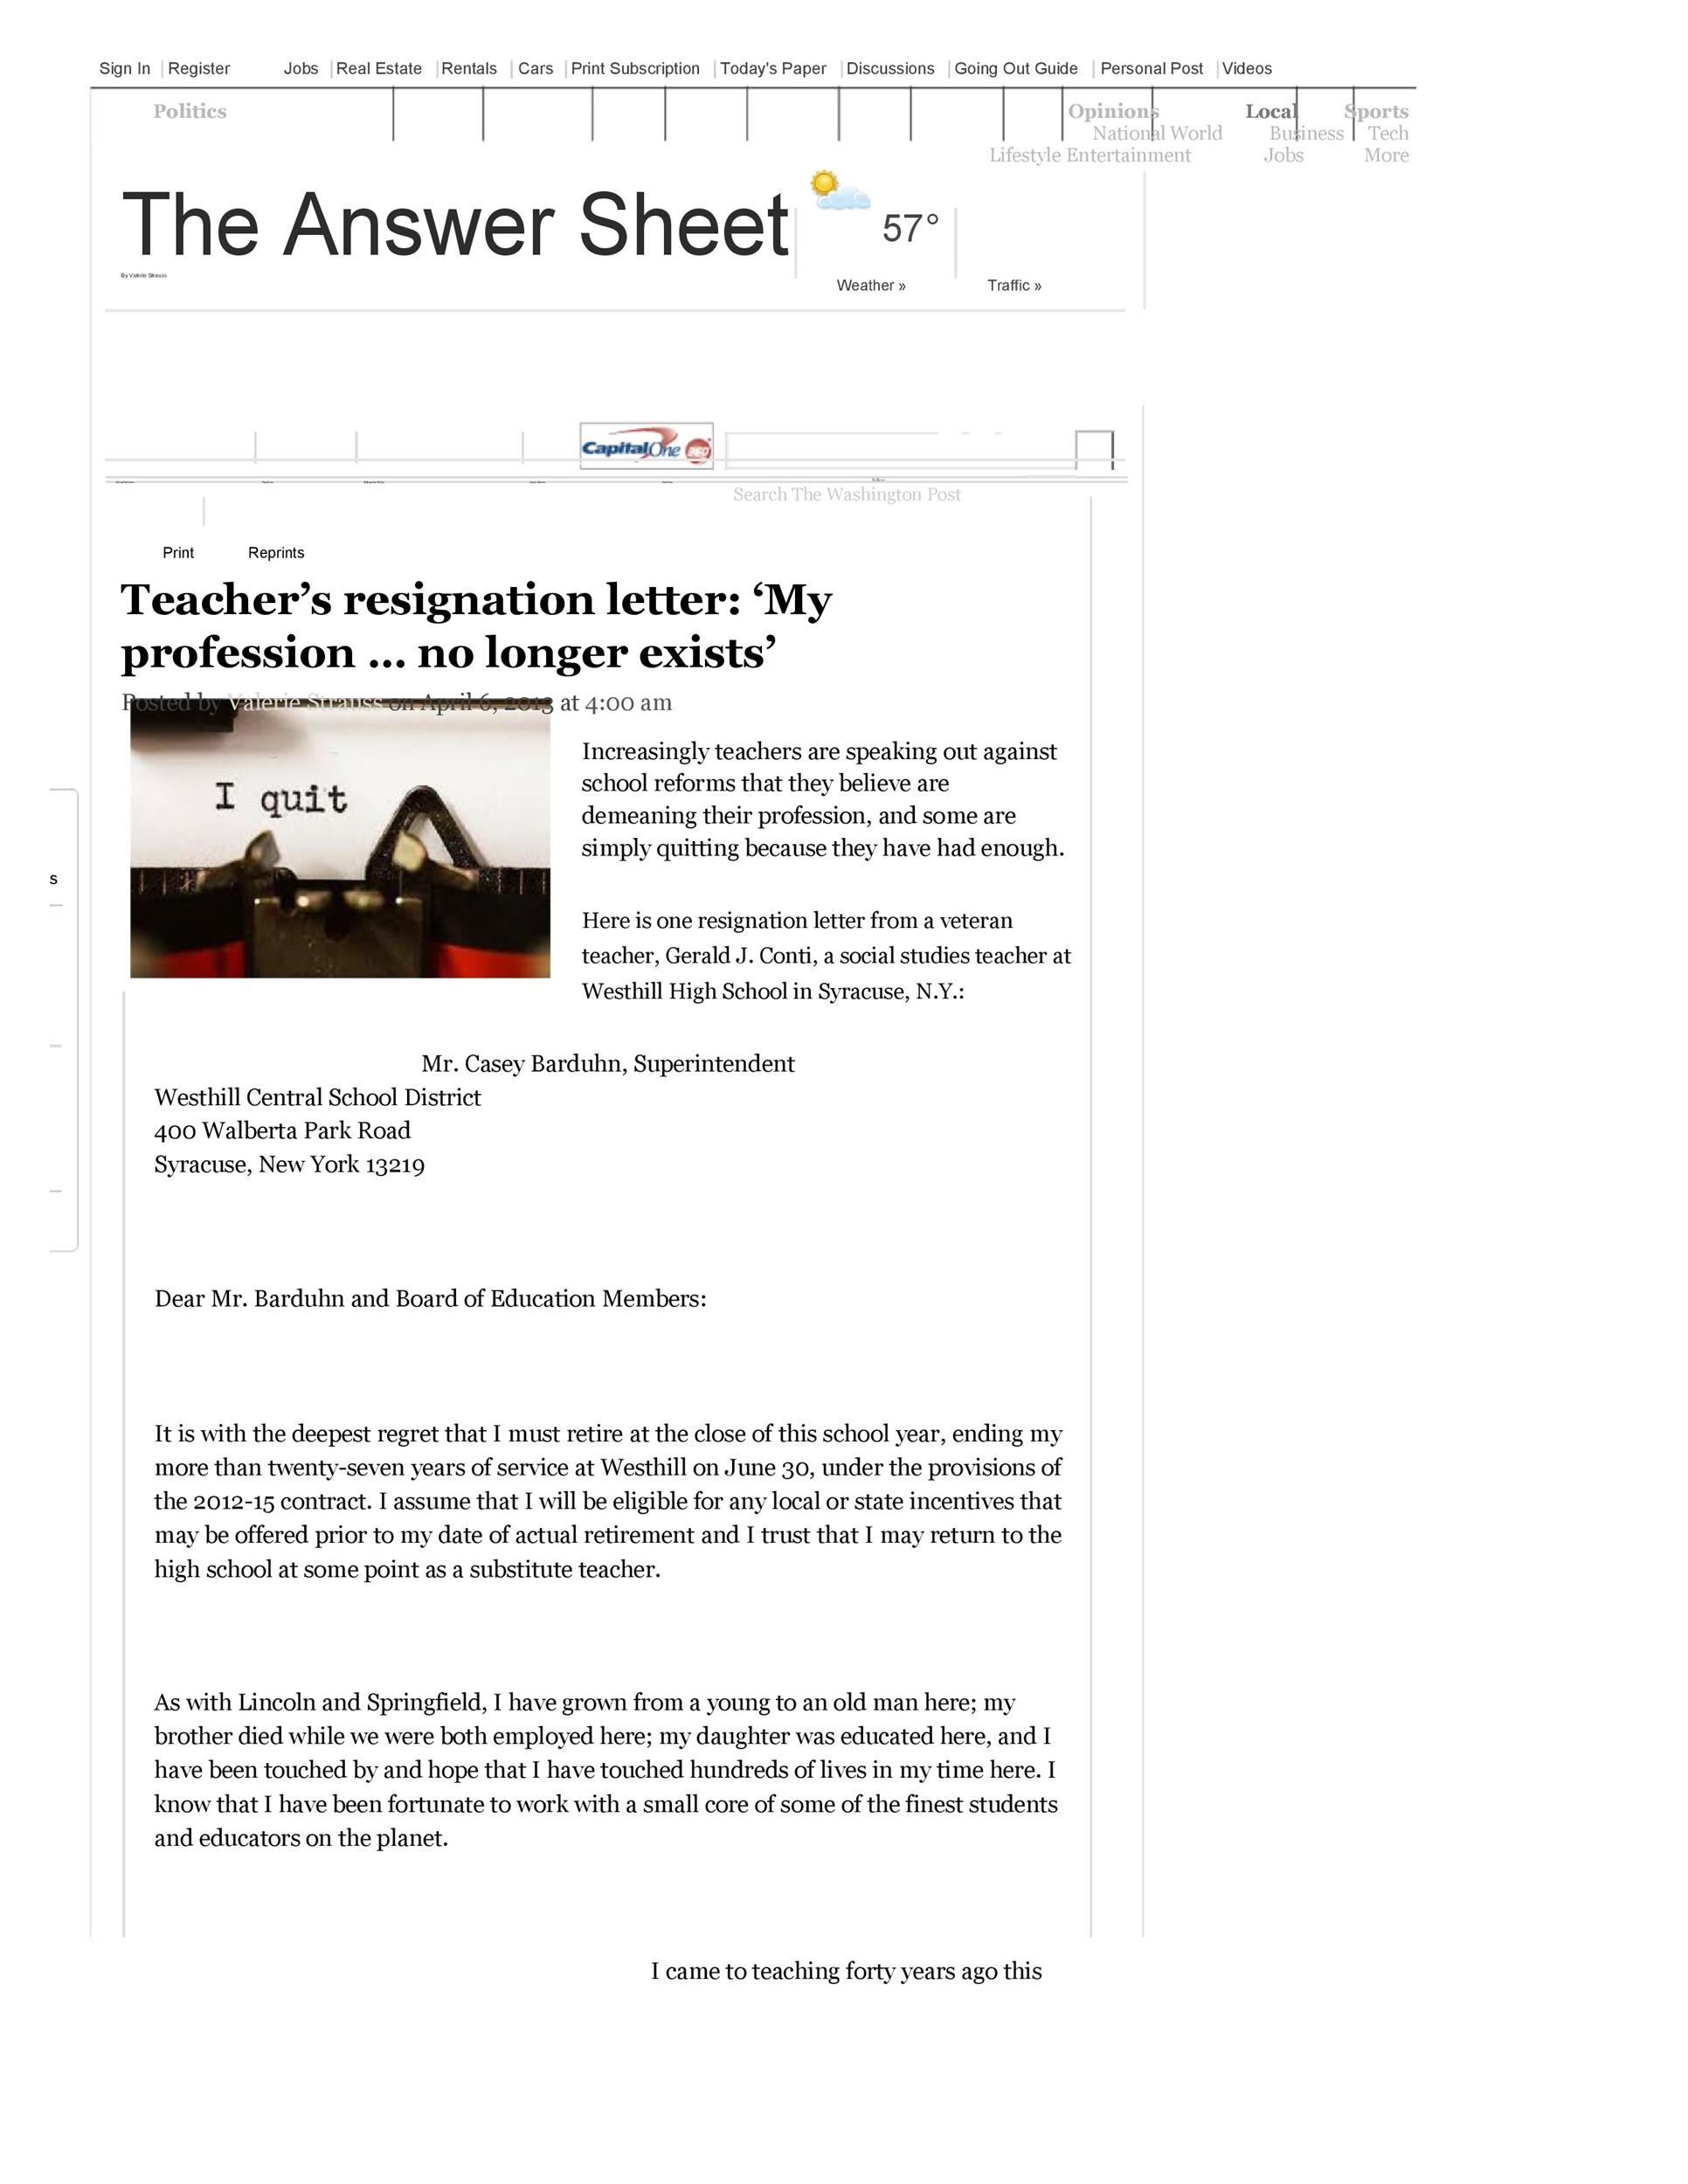 Free teacher resignation letter 38